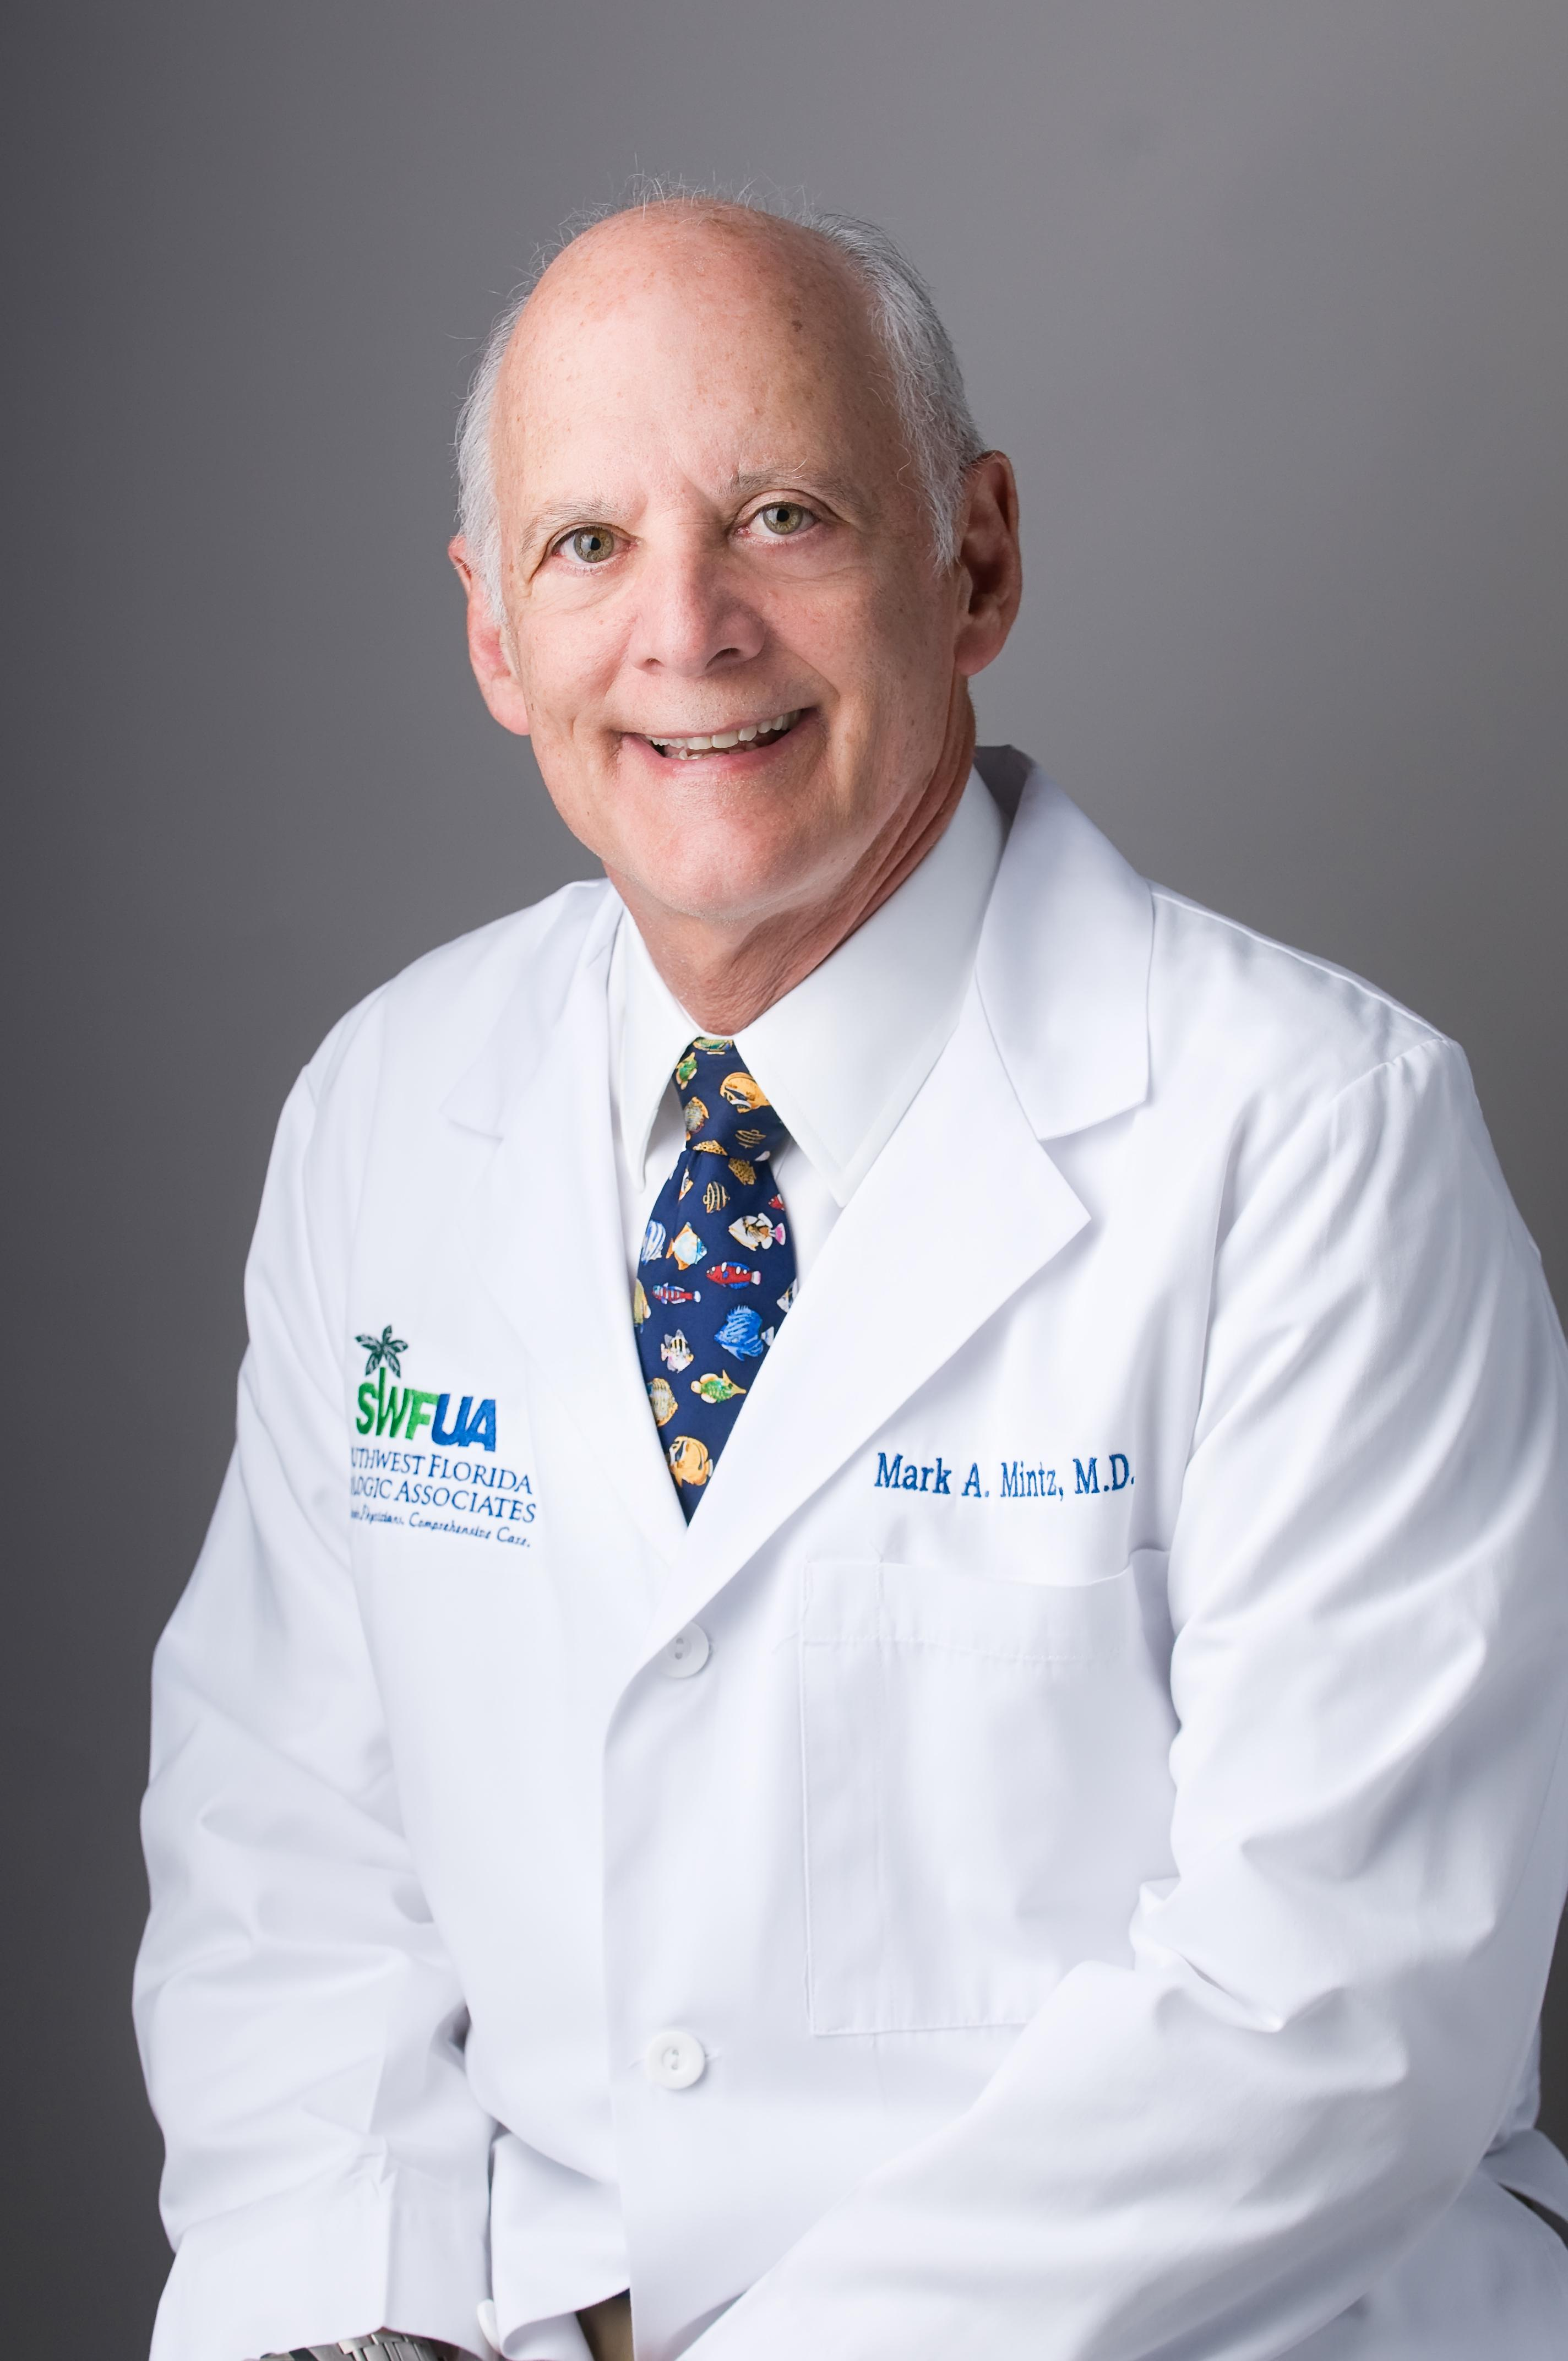 Mark A Mintz, MD